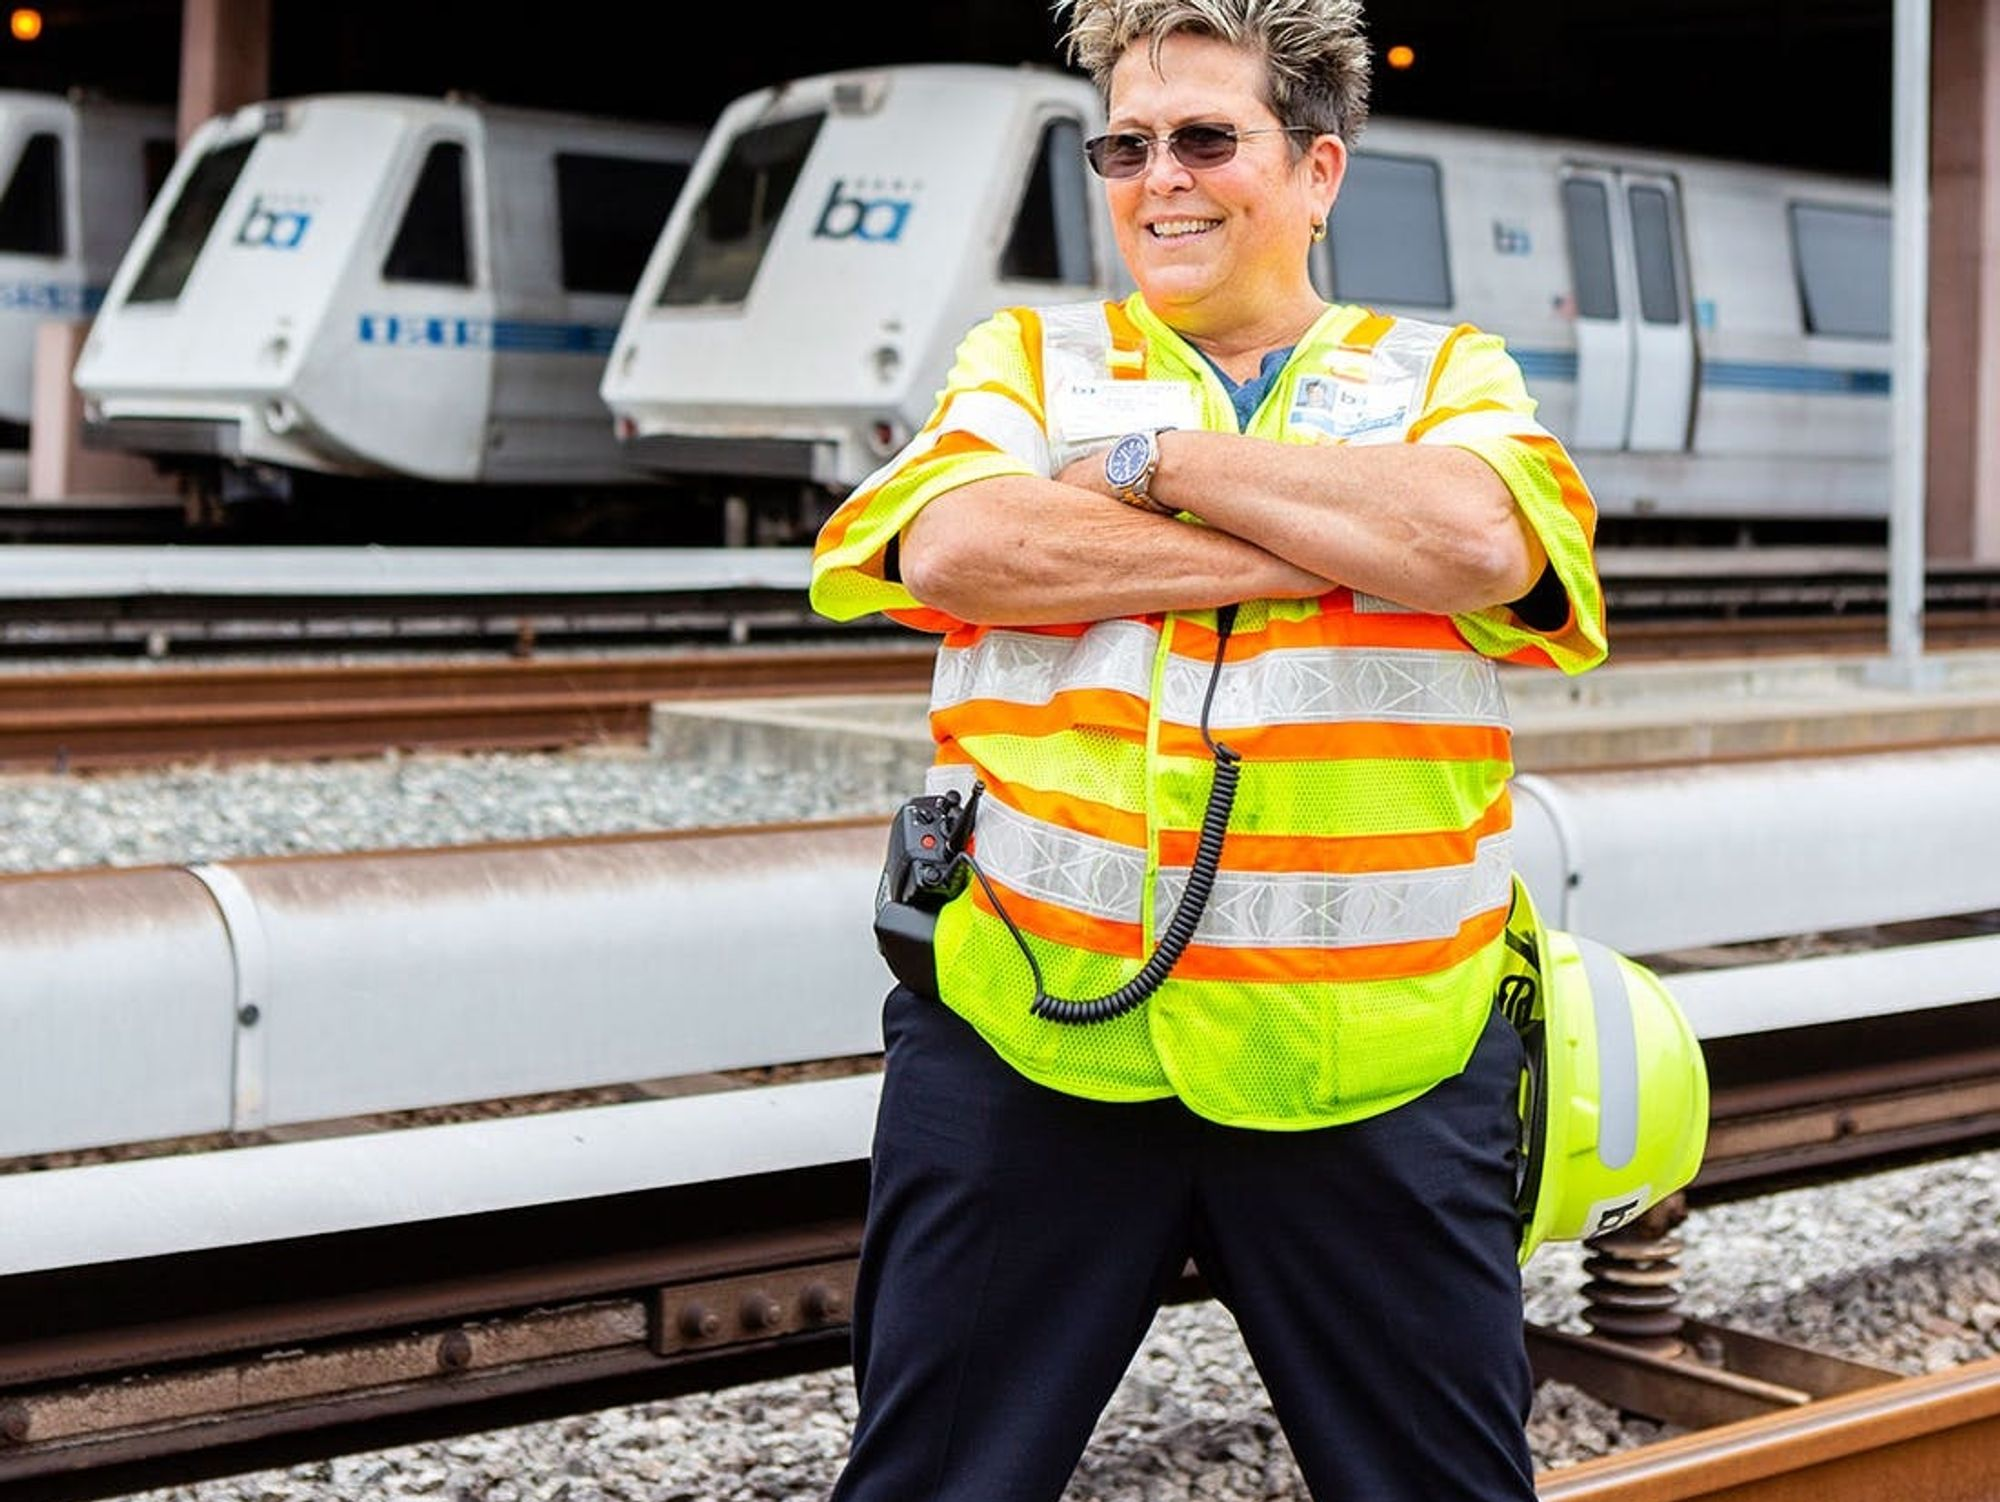 A Woman's Place: Women in Transportation